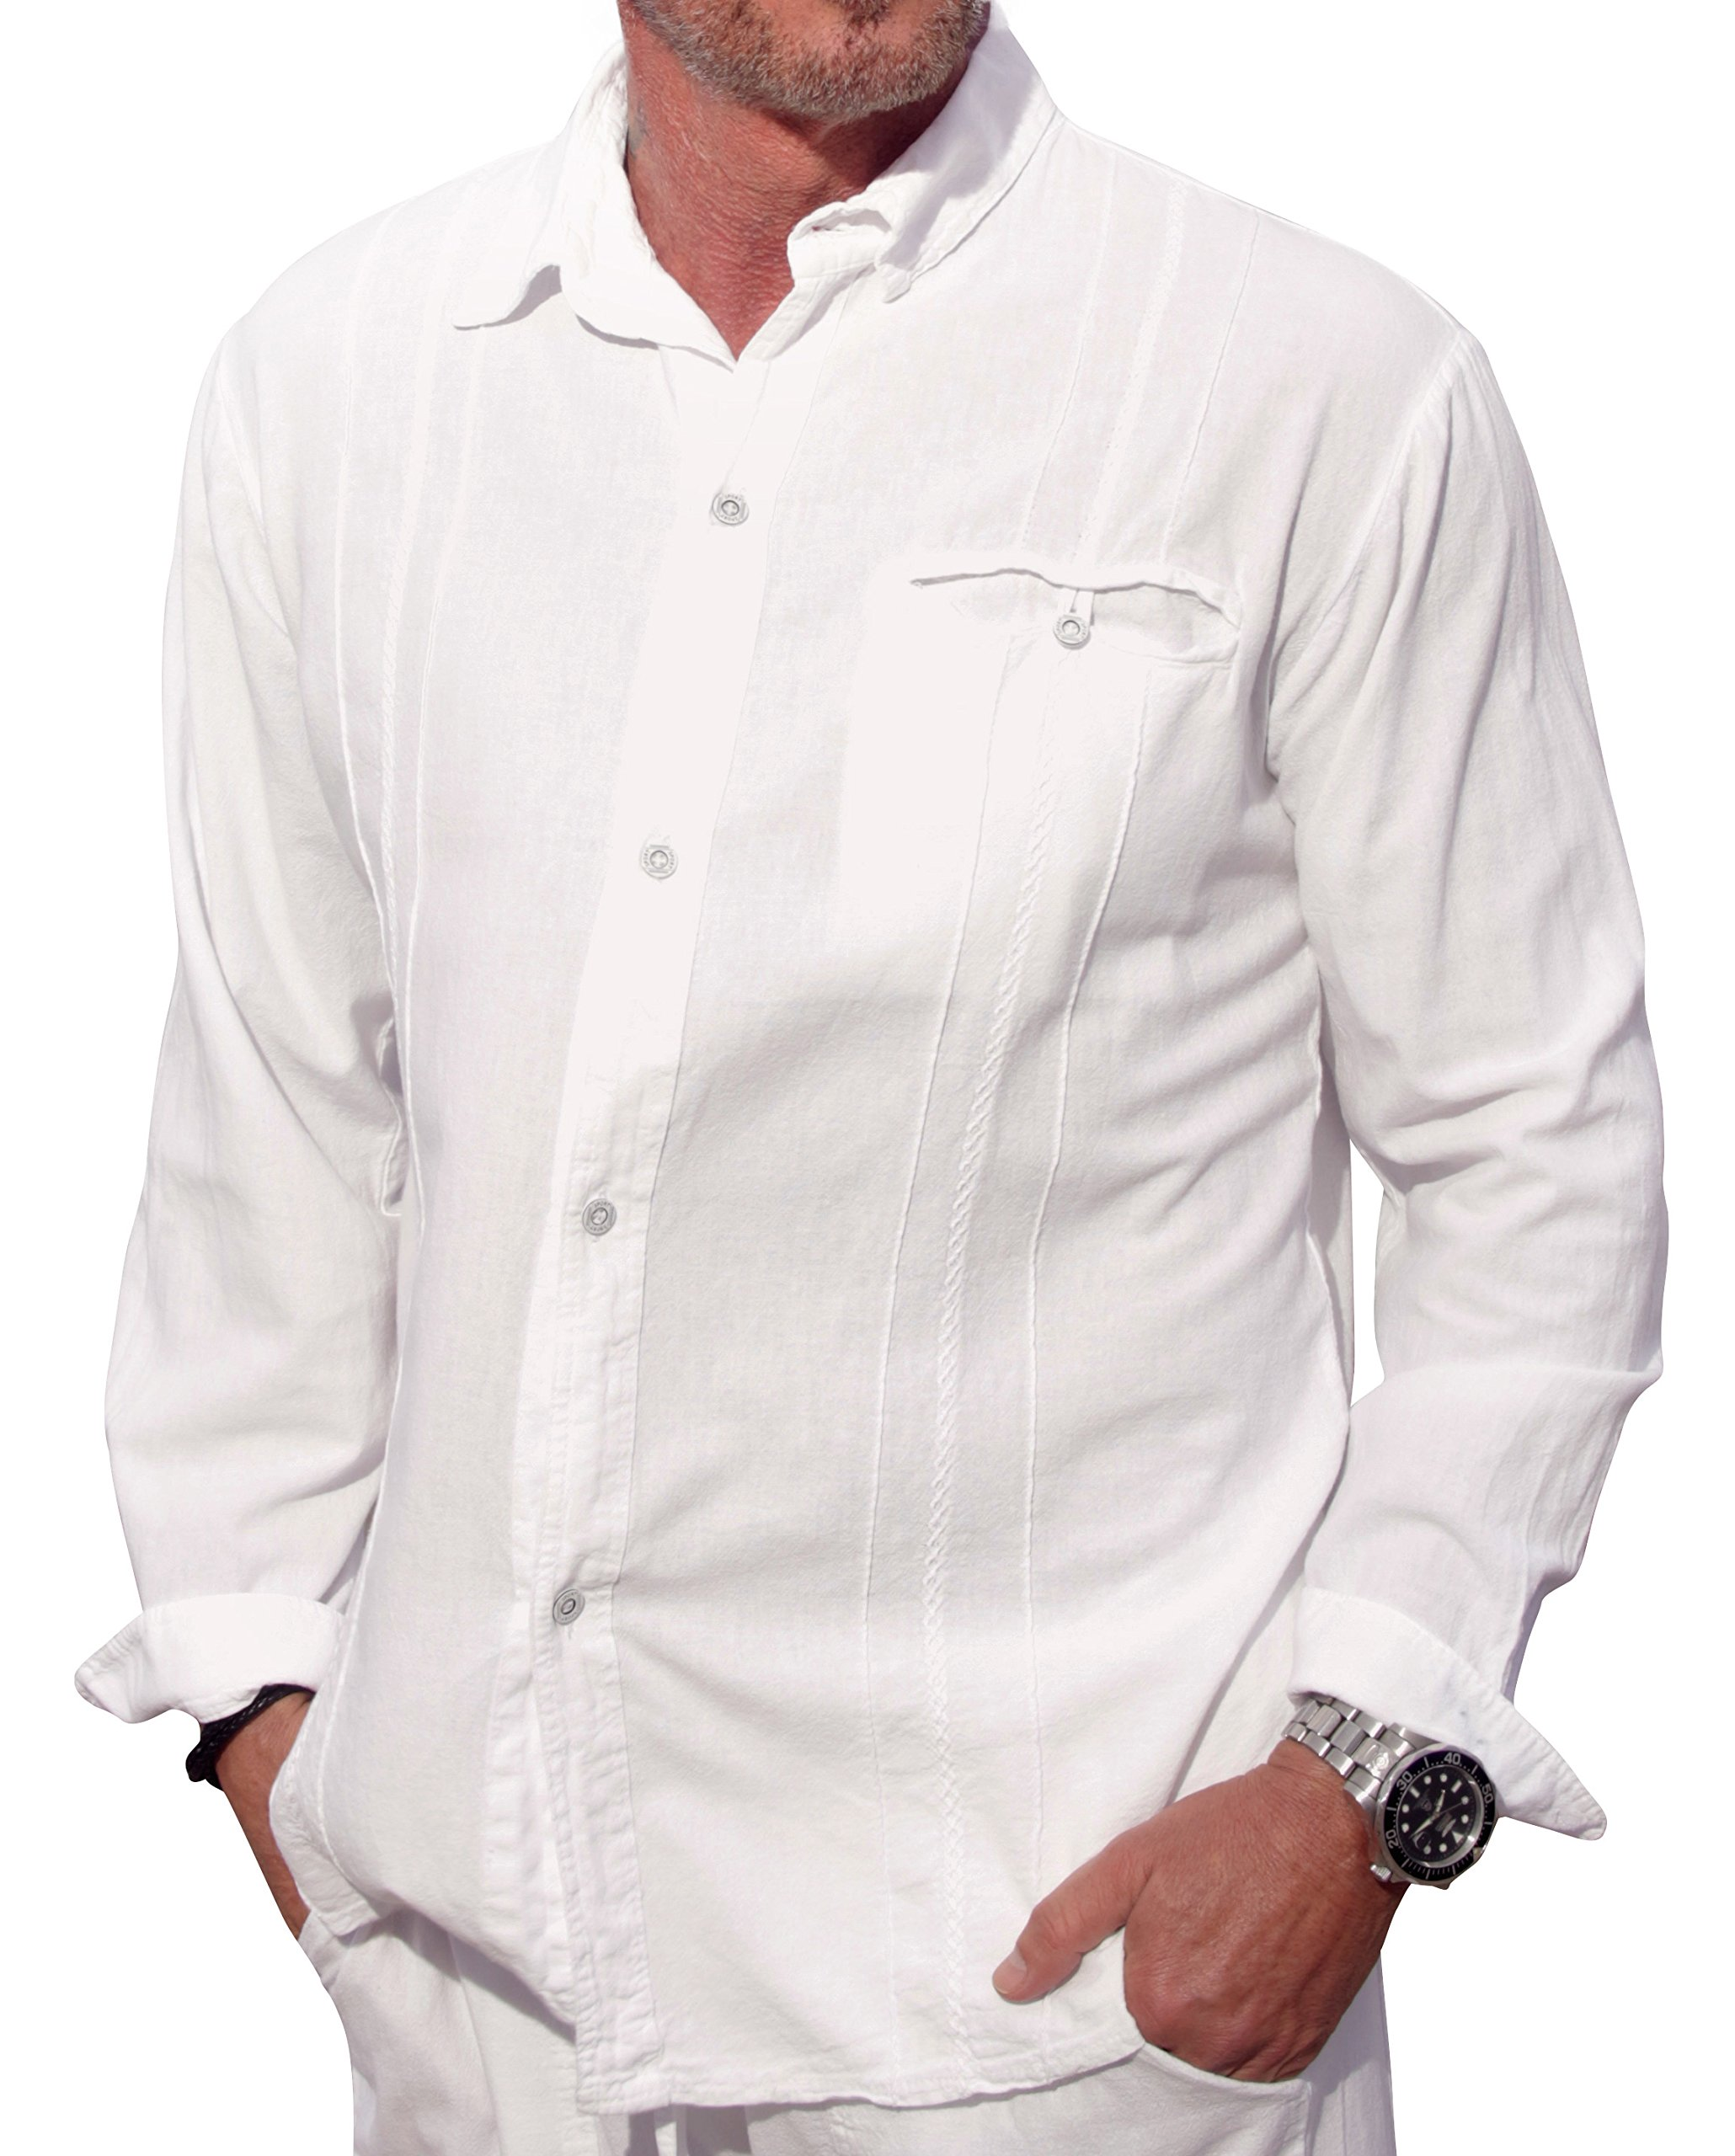 M&B USA Cotton White Long-Sleeve Button Loop Closure Pocket Organic Embroidered Button Down Shirt (X-Large, White) by M&B USA